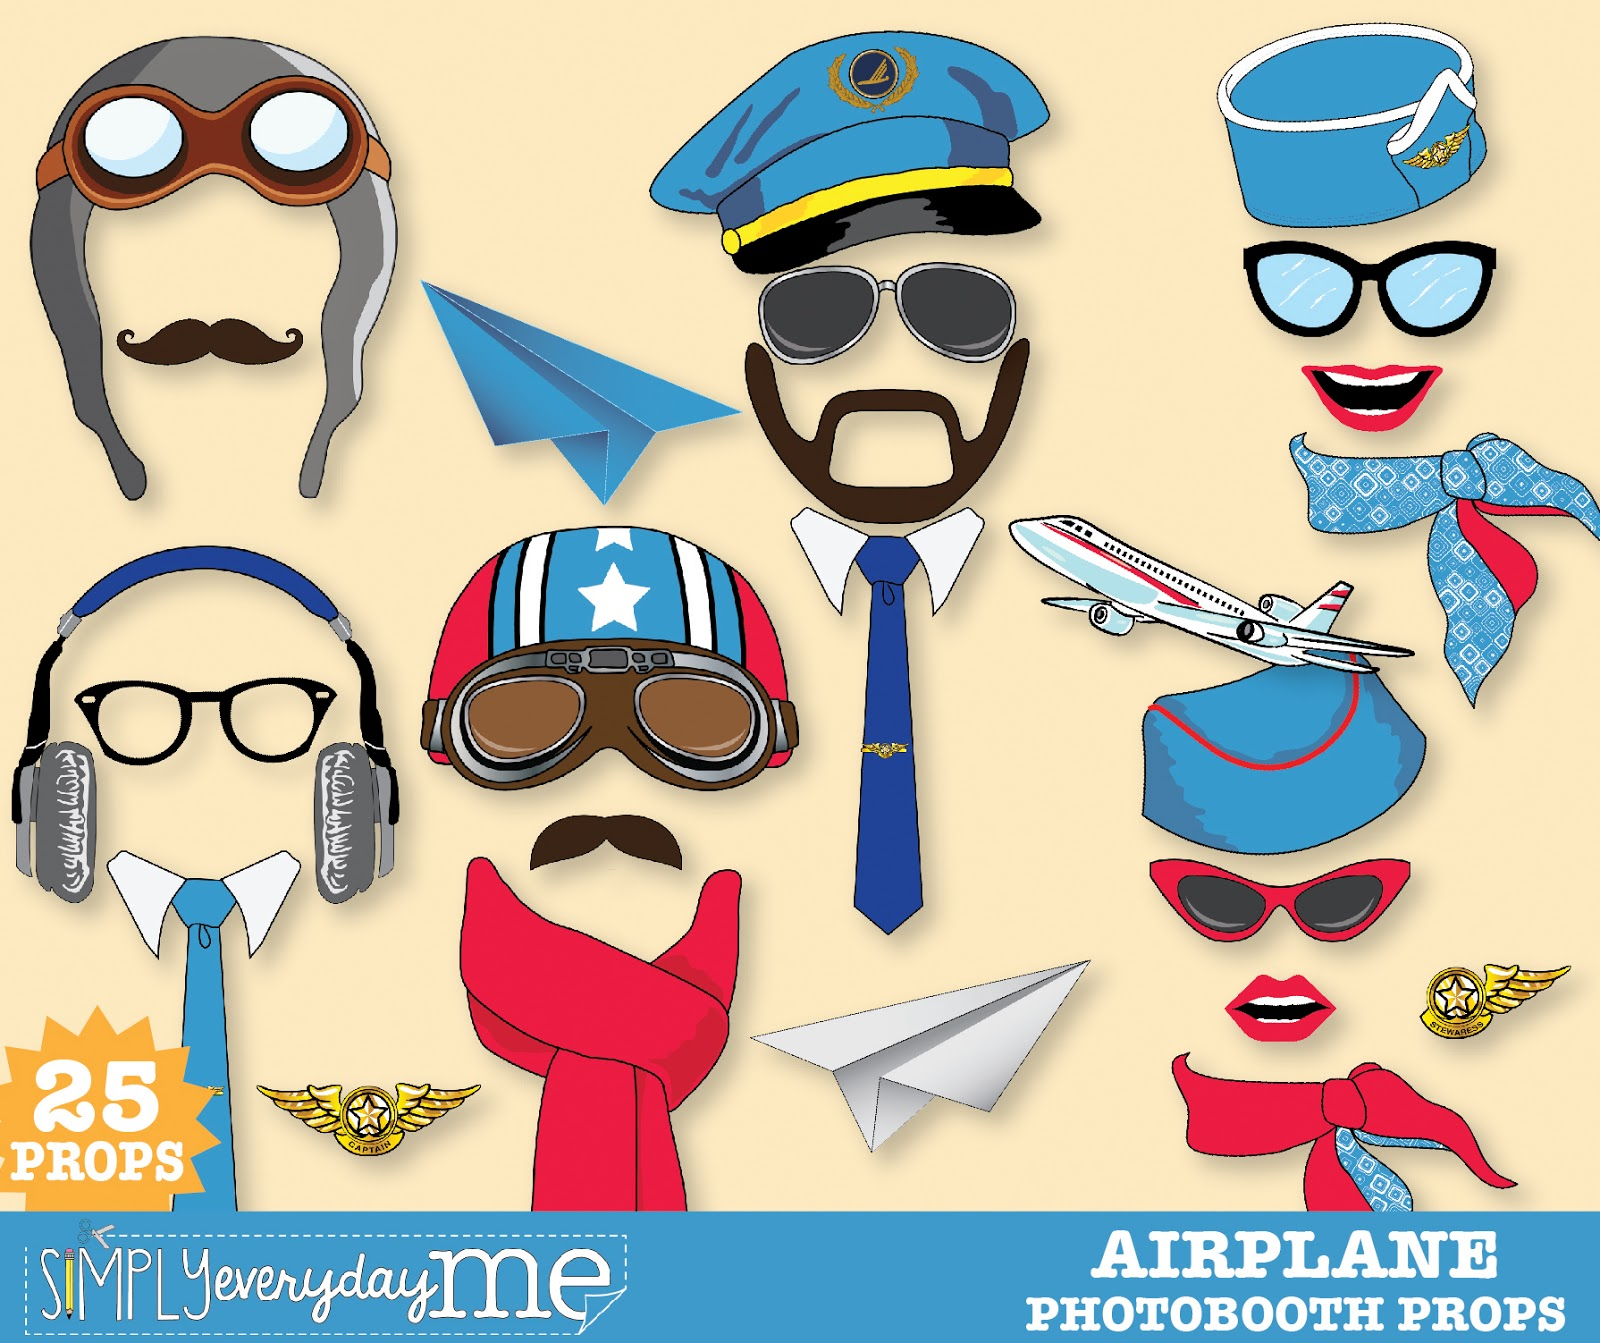 35 Pilot Party Props Airplane Party Diy Printable Photo Booth: SimplyEverydayMe: Retro Airplane Party Photo Booth Prop